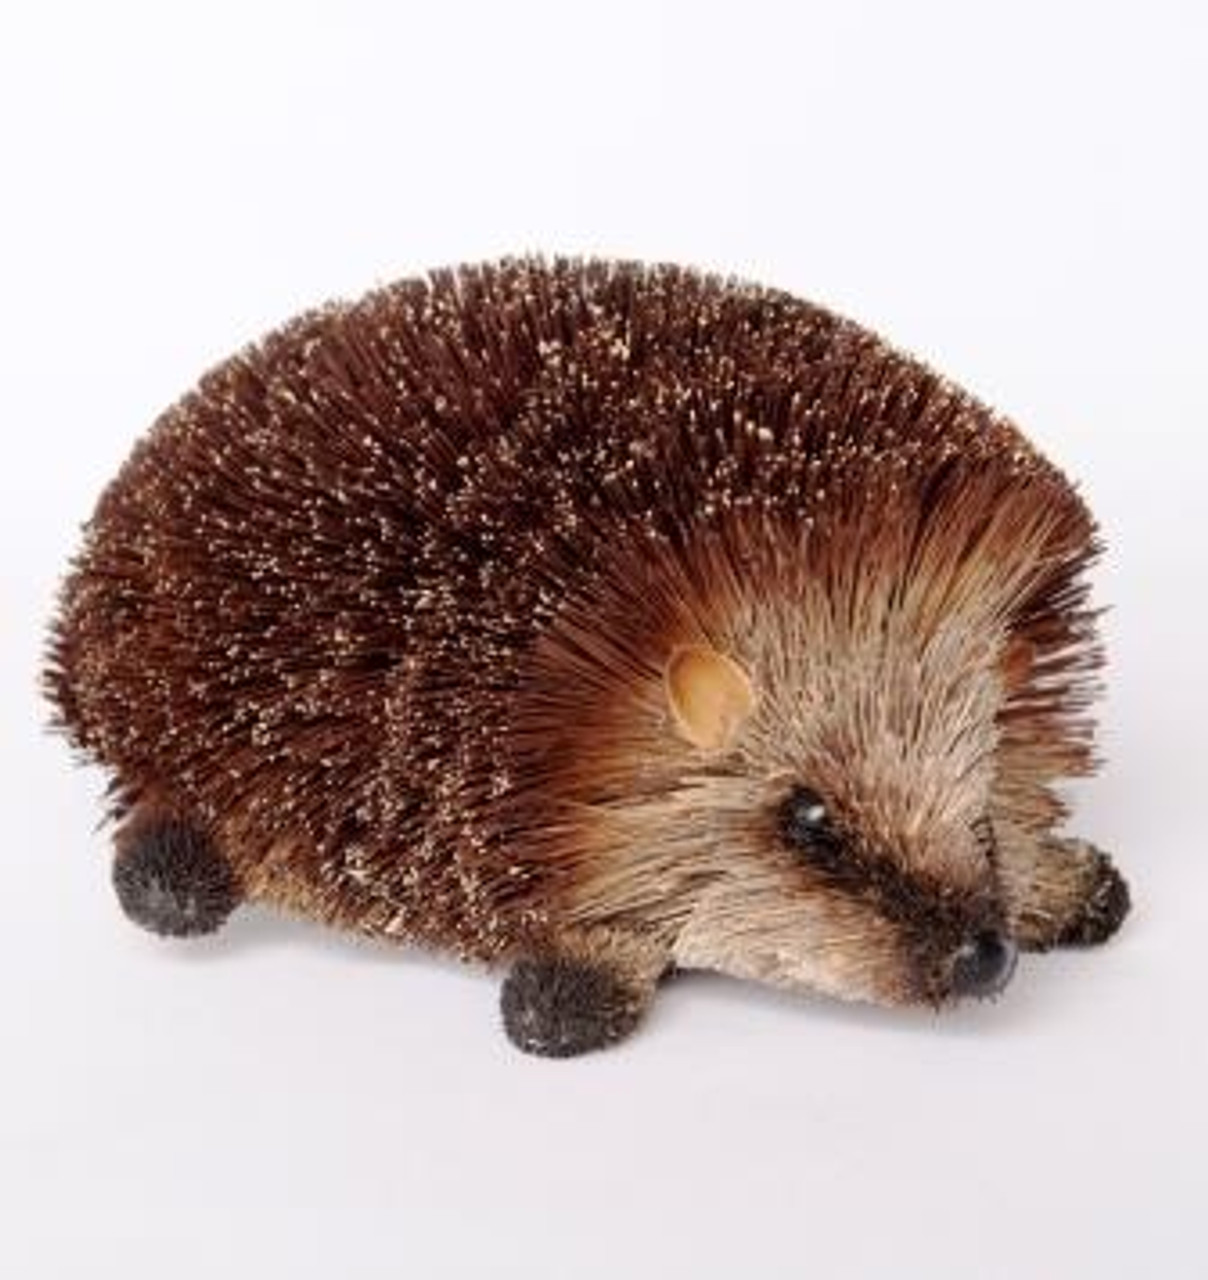 Beautifully Handcrafted, Handmade and all Natural Hedgehog Crawling. Medium Size (15cm)